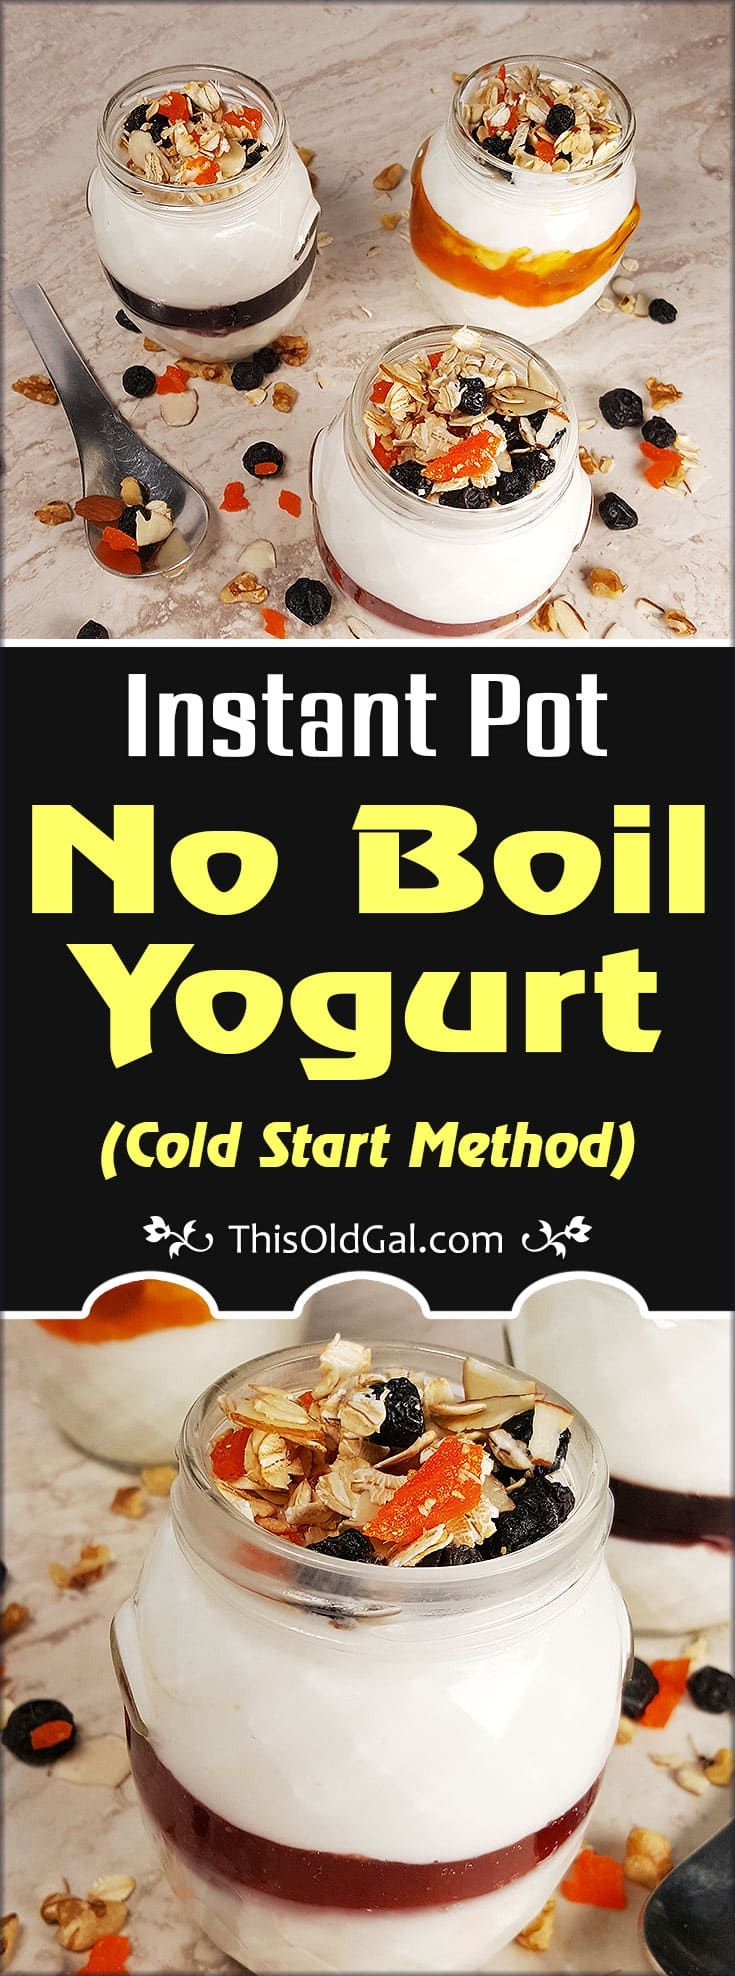 Instant Pot No Boil Yogurt is simply a shortcut to Yogurt making that uses a Cold Start Method. Meaning the Milk is not first boiled. #instantpotrecipes